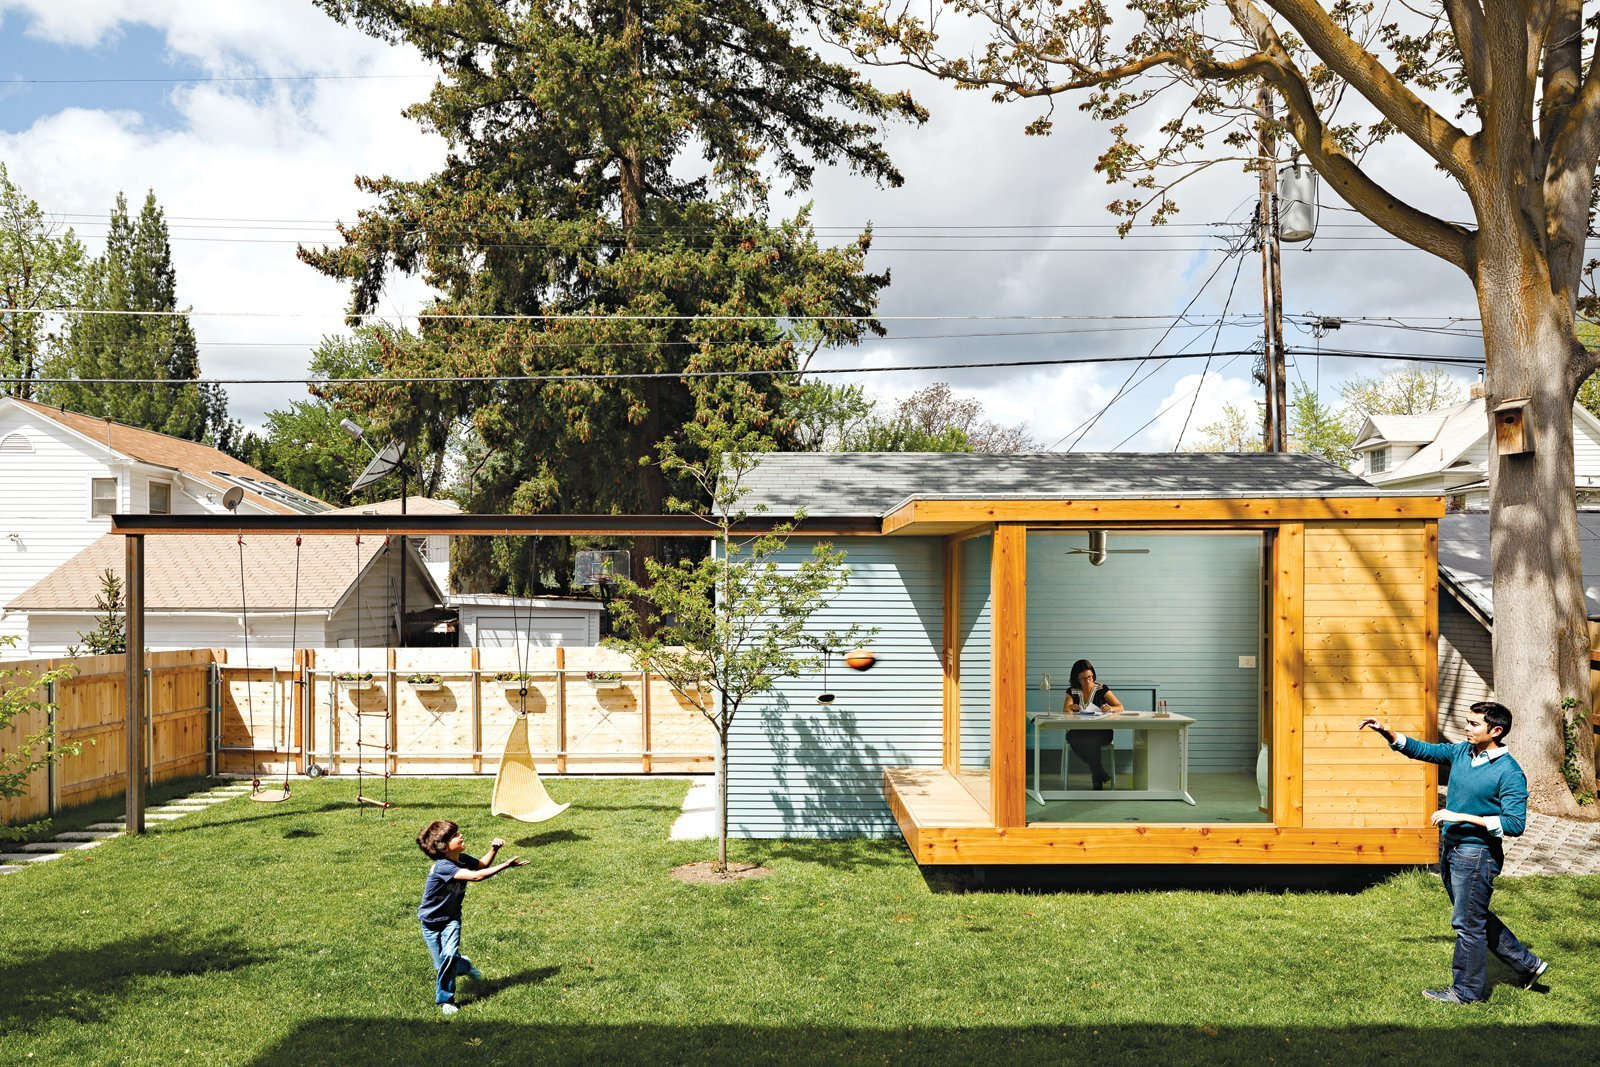 Shed & Studio, Den, Family Room, and Living Room Portland, Oregon–based architects Heidi Beebe and Doug Skidmore designed a glass-walled studio to create a focal point in backyard of this Boise, Idaho house, and as a home office for one of the owners.  Shed & Studio Living Room Photos from 8 Tiny Sheds and Studios Used as Home Offices or Creative Retreats